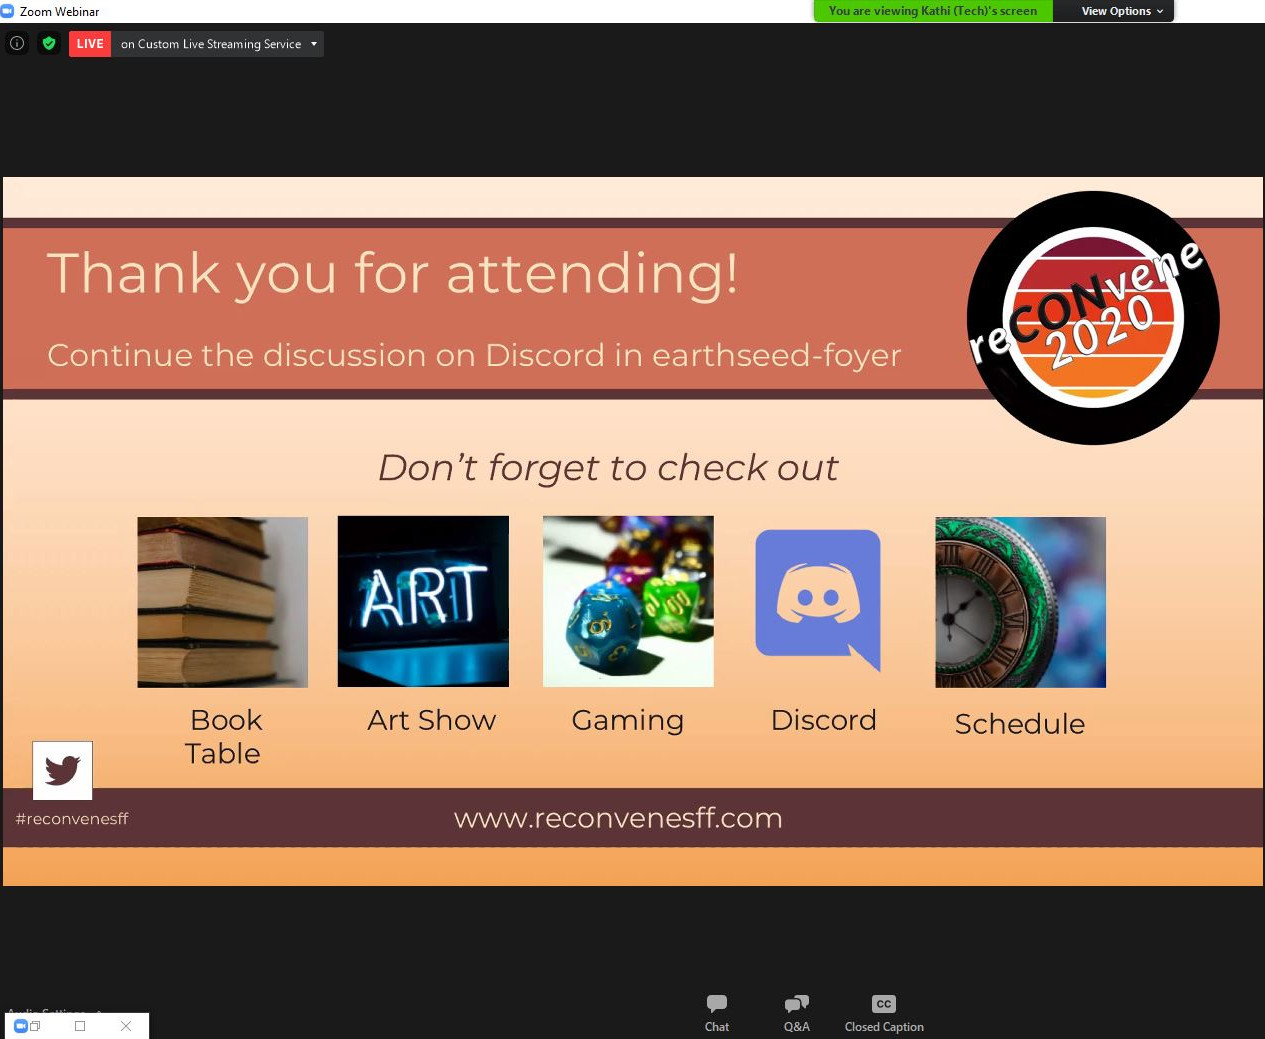 a slide from presentation showing 'Thank you for for attending' text. It contains also logo and 'Don't forget to check out' section listing Book table, Art Show, Gaming, Discord and Schedule.